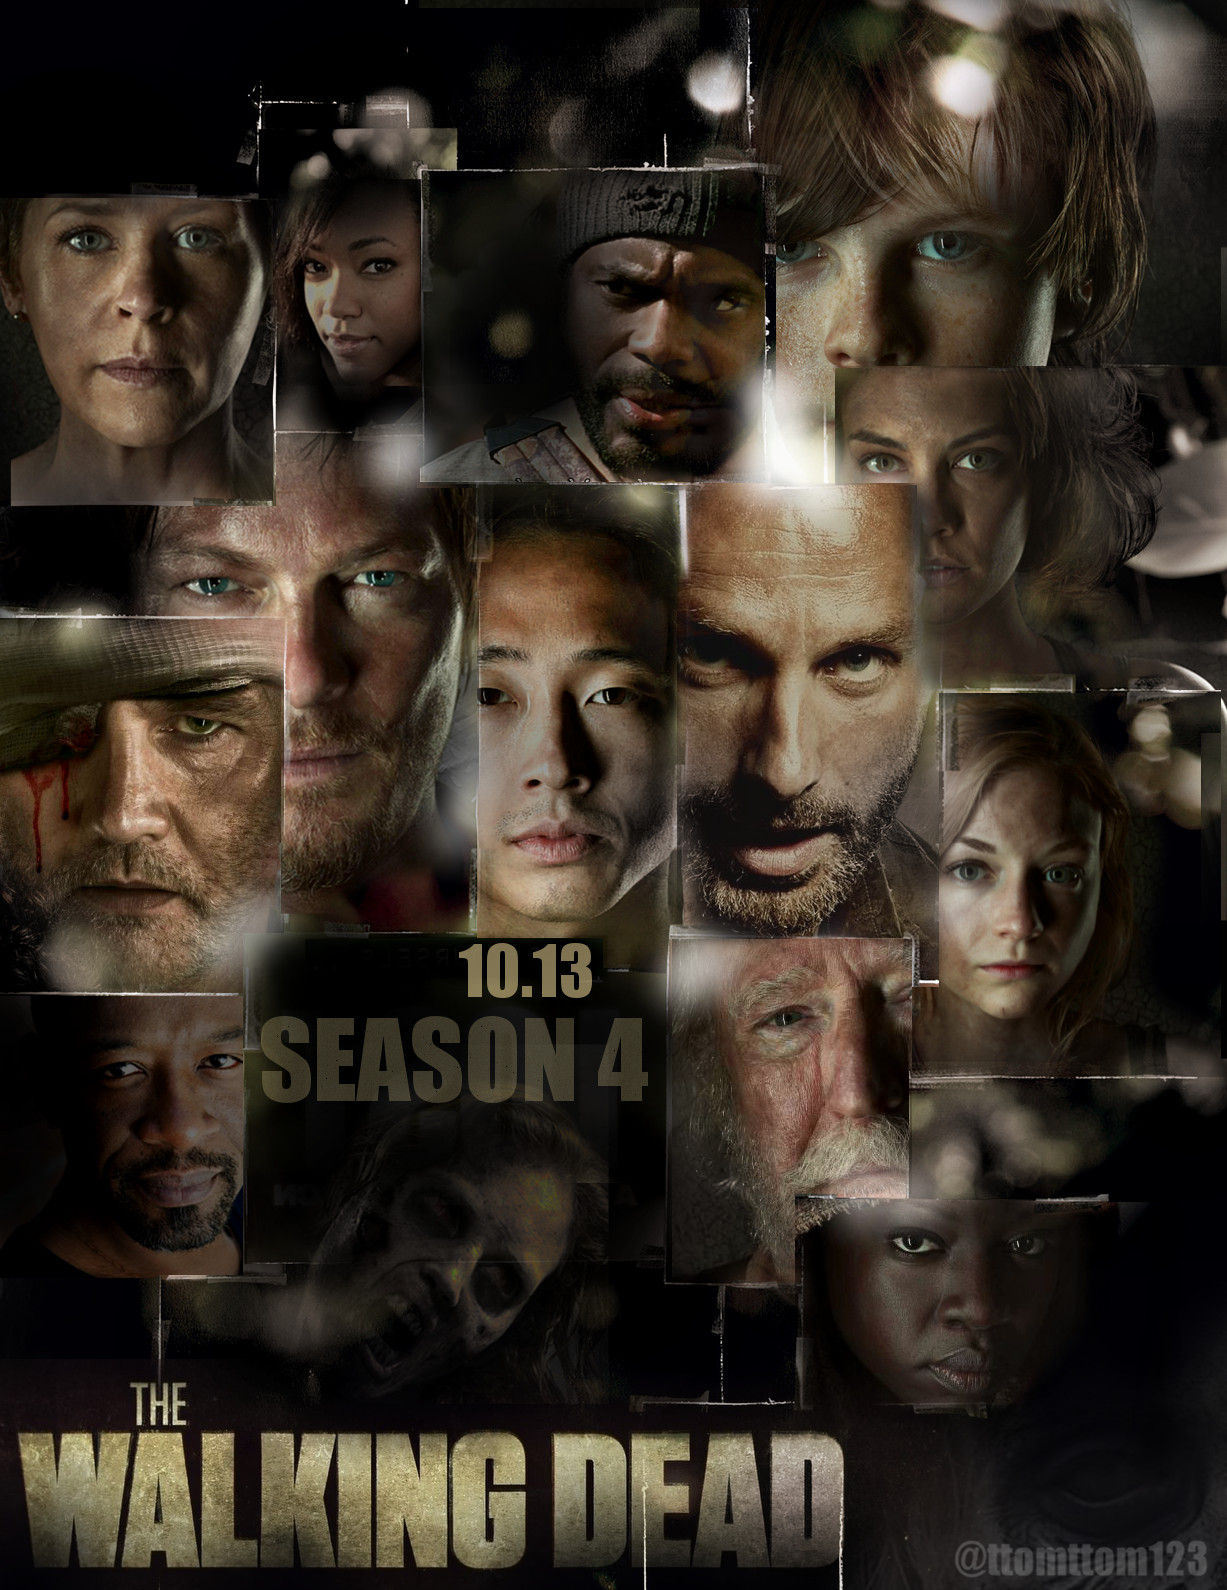 The Walking Dead S04E01 HDTV XviD